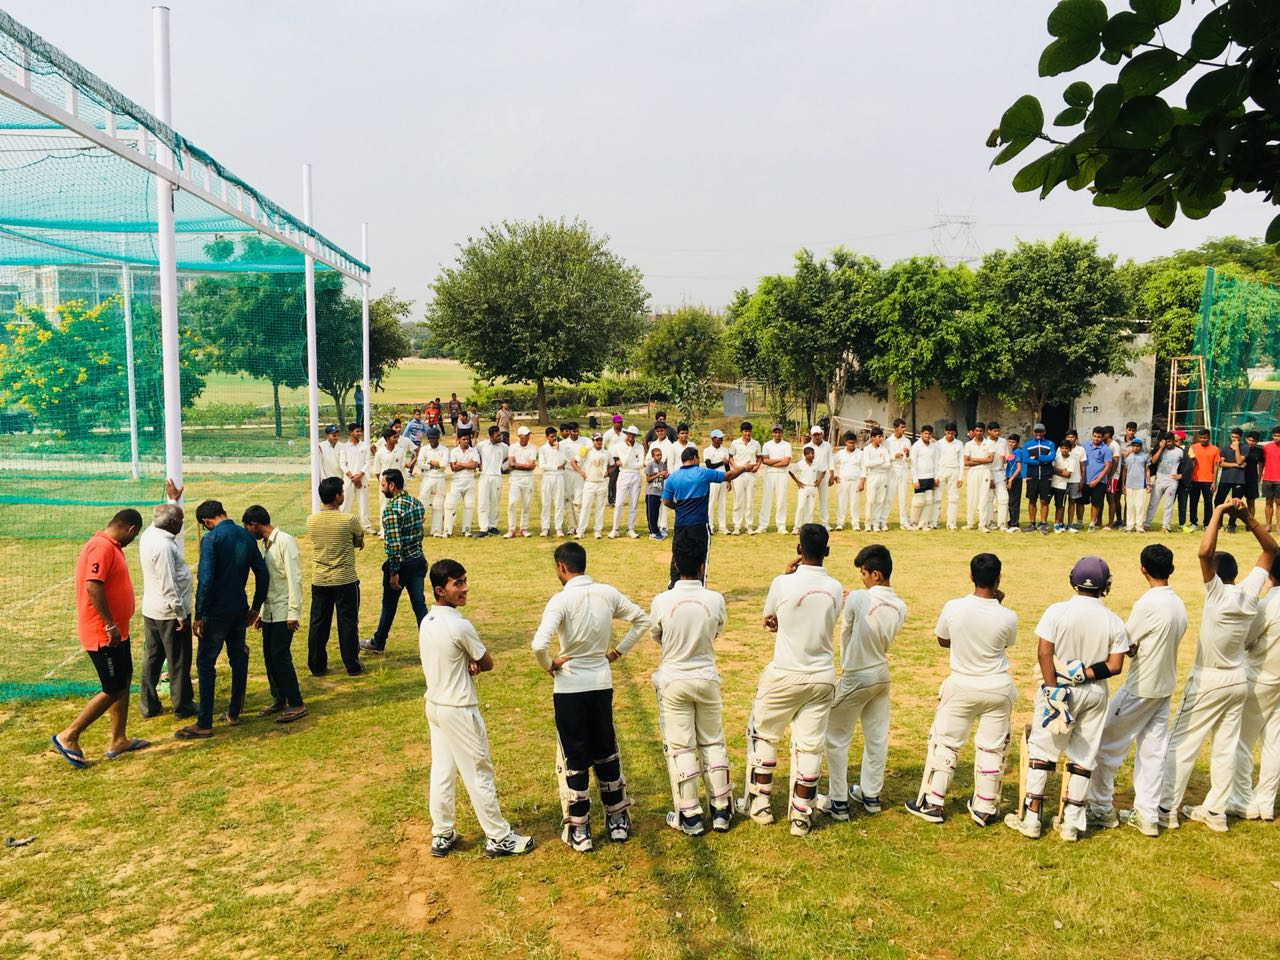 Inauguration of New Cricket Practice Wickets